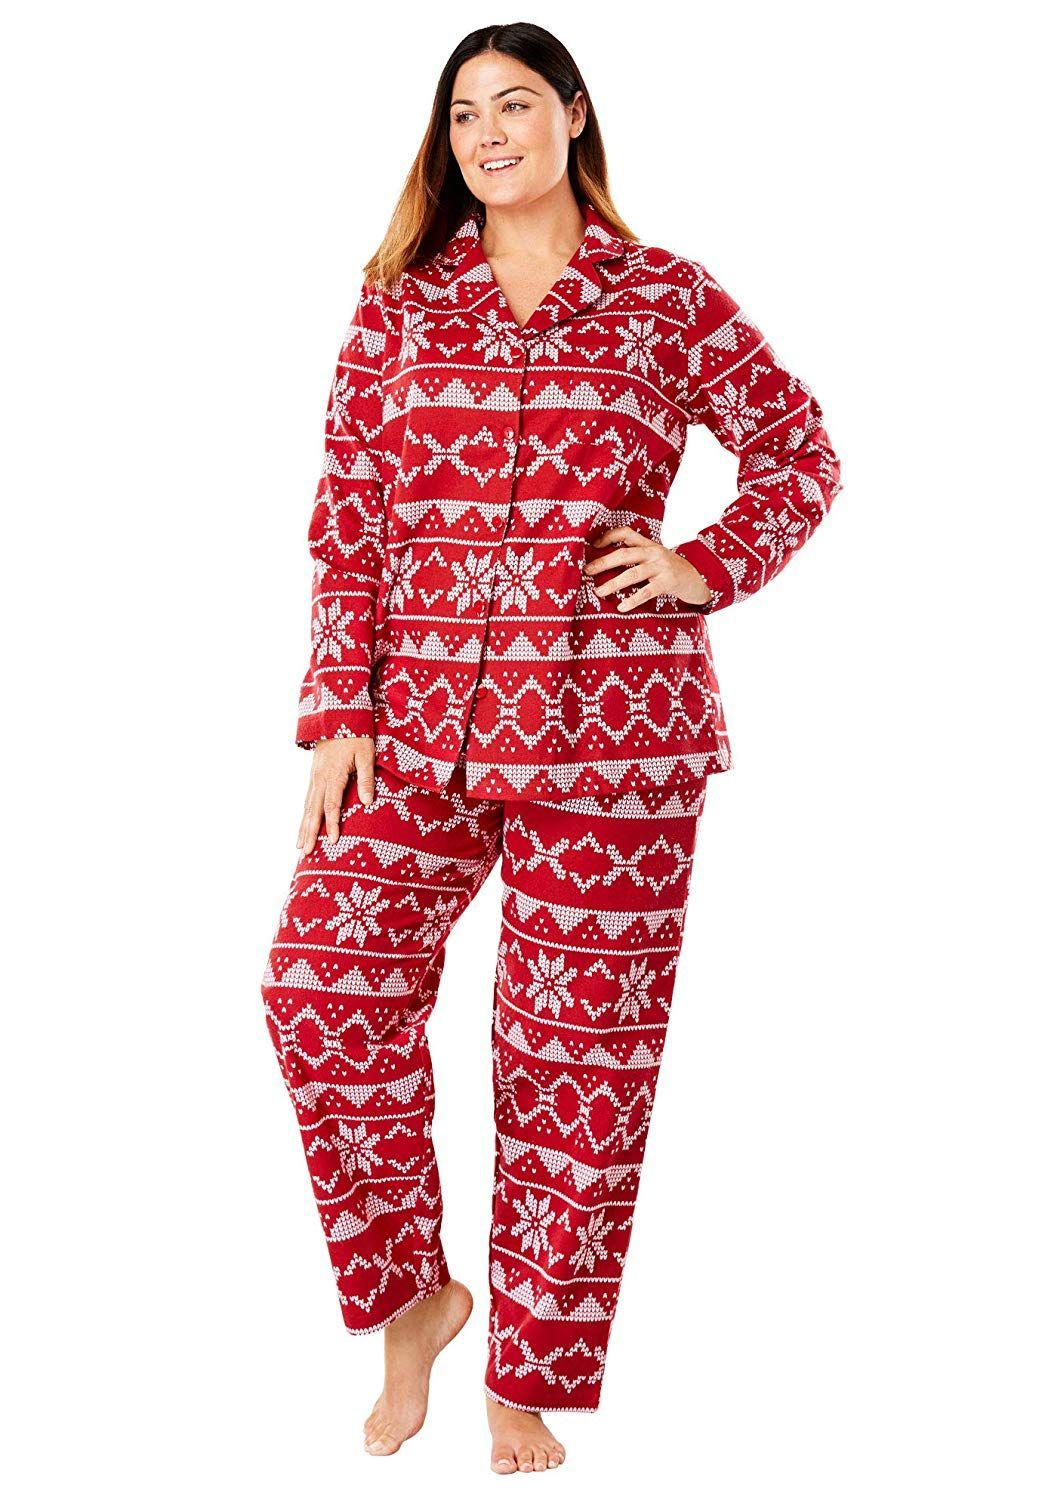 Just Love Ultra-Soft Women's Pajama Pant Set Clothing, Shoes & Jewelry Nightgown with Matching Socks